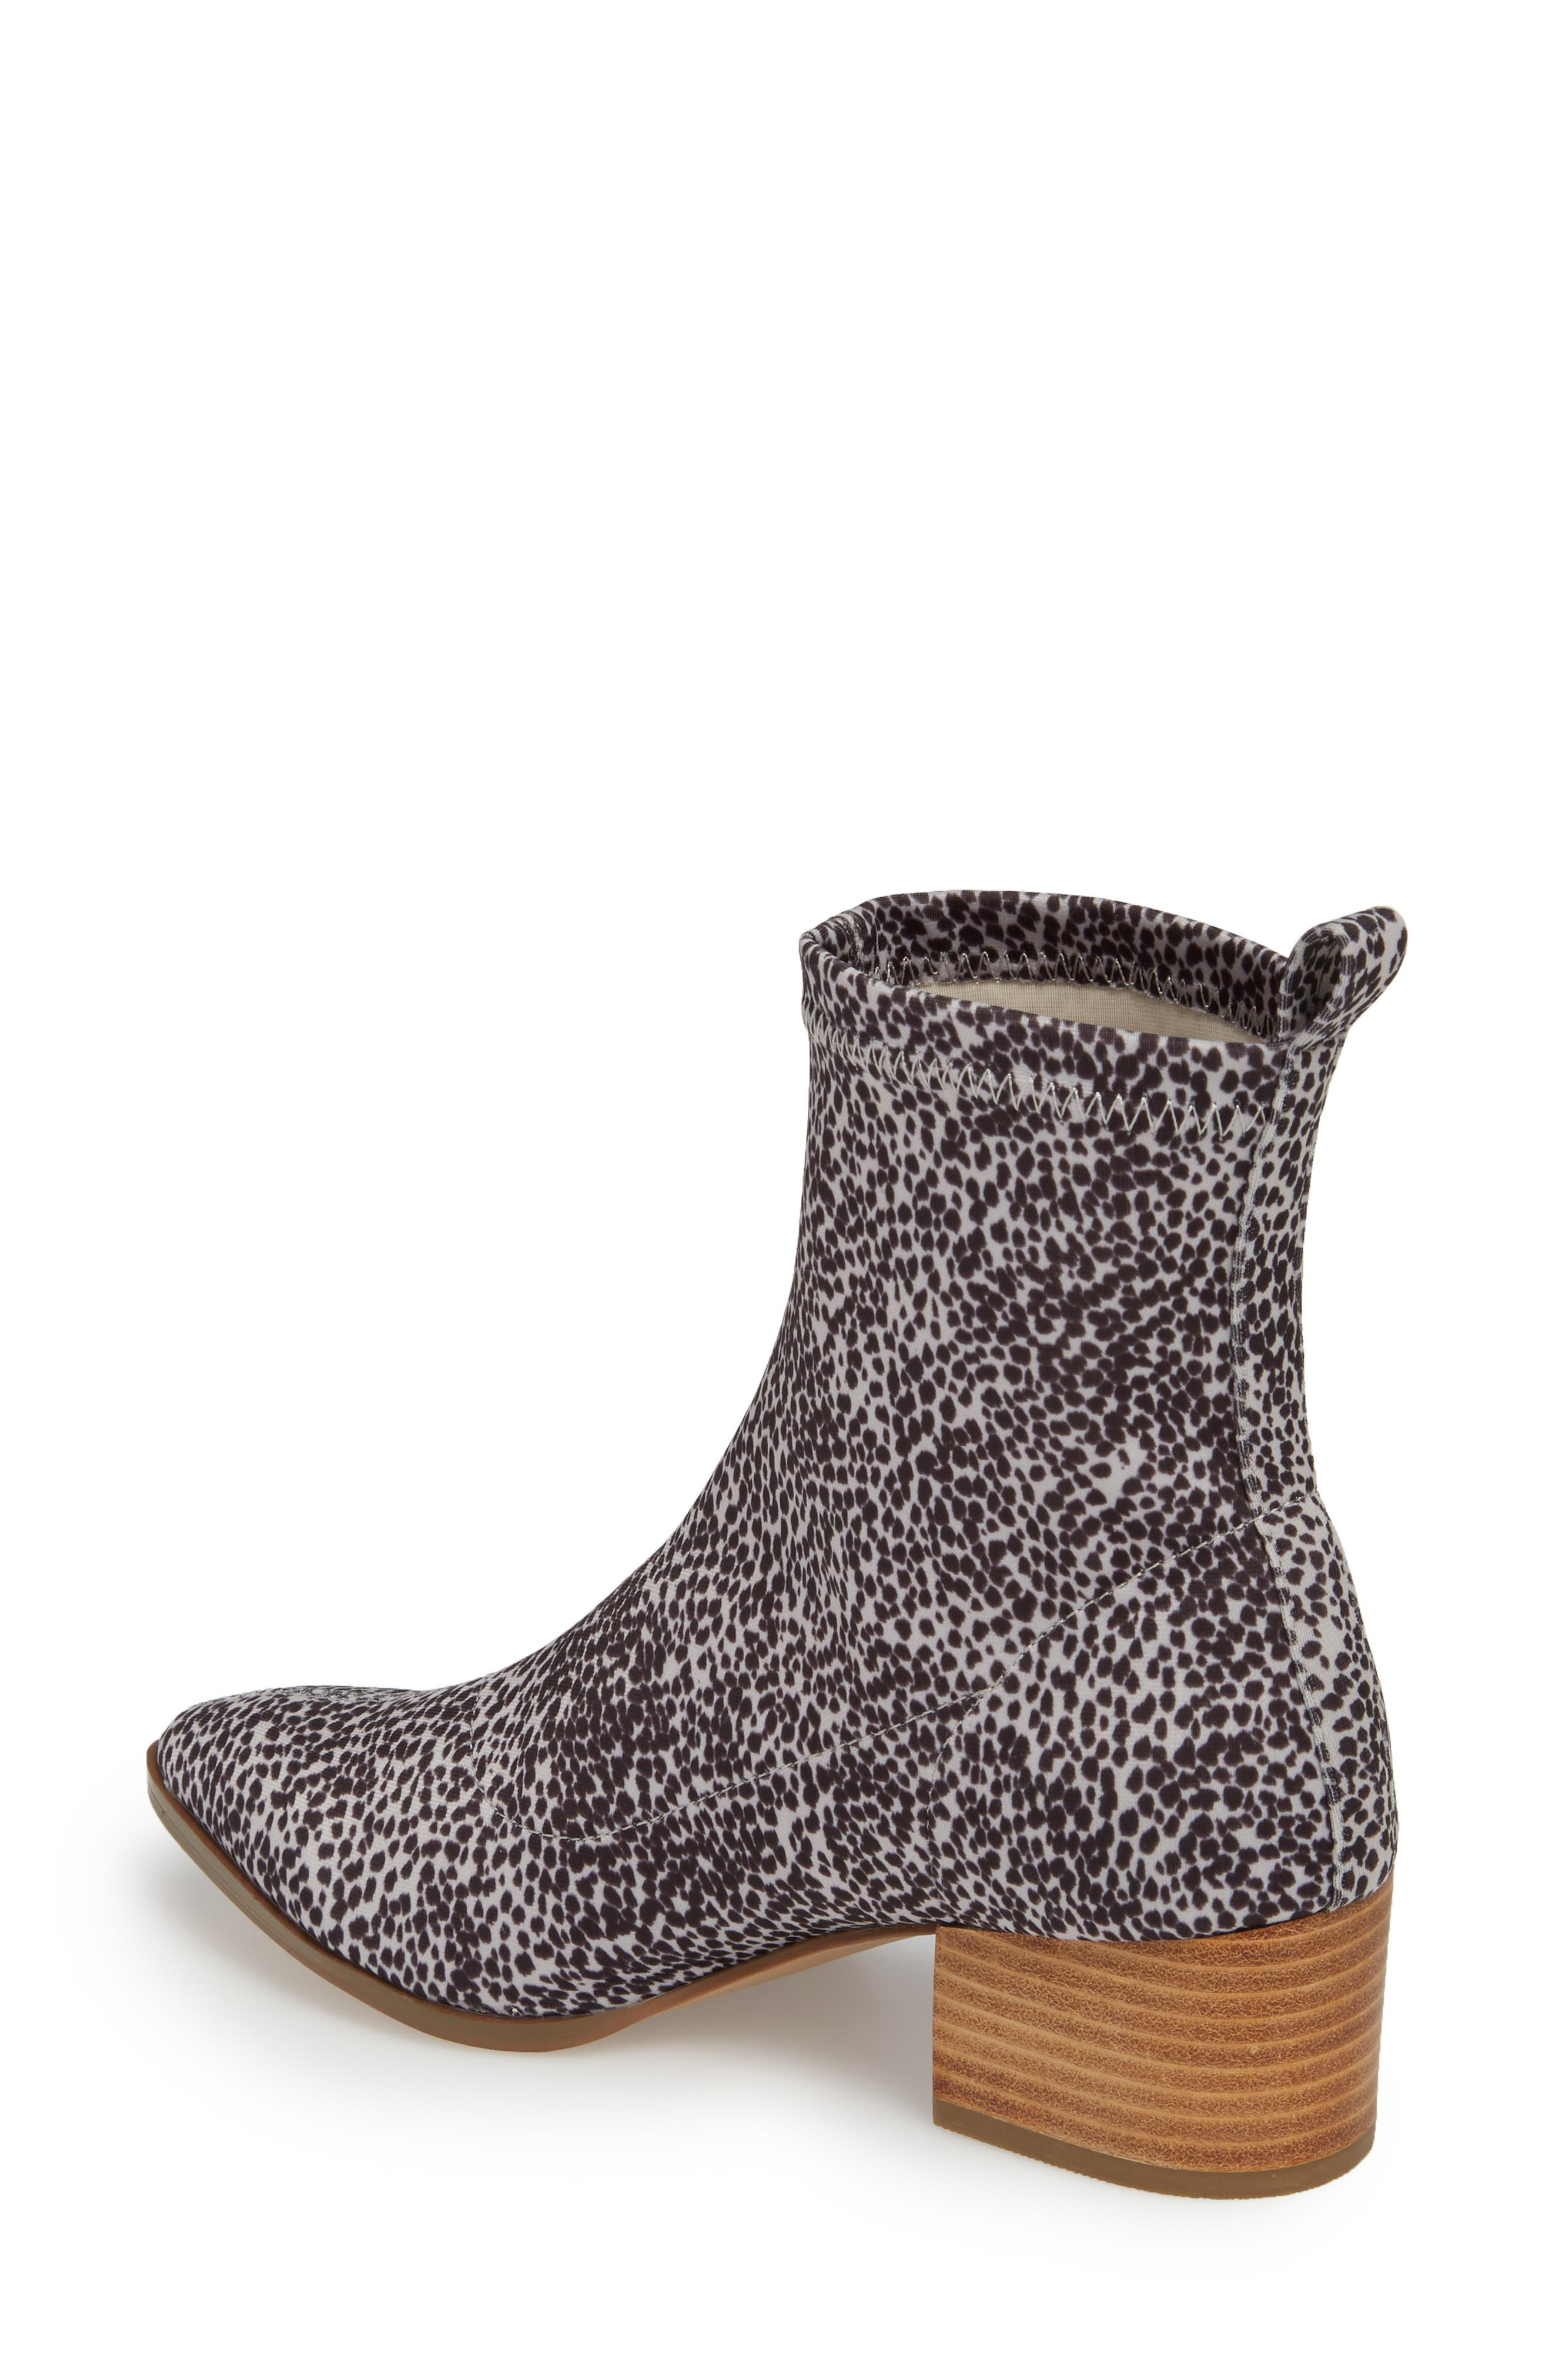 Amuse Society x Matisse Liliana Sock Bootie,                             Alternate thumbnail 2, color,                             111